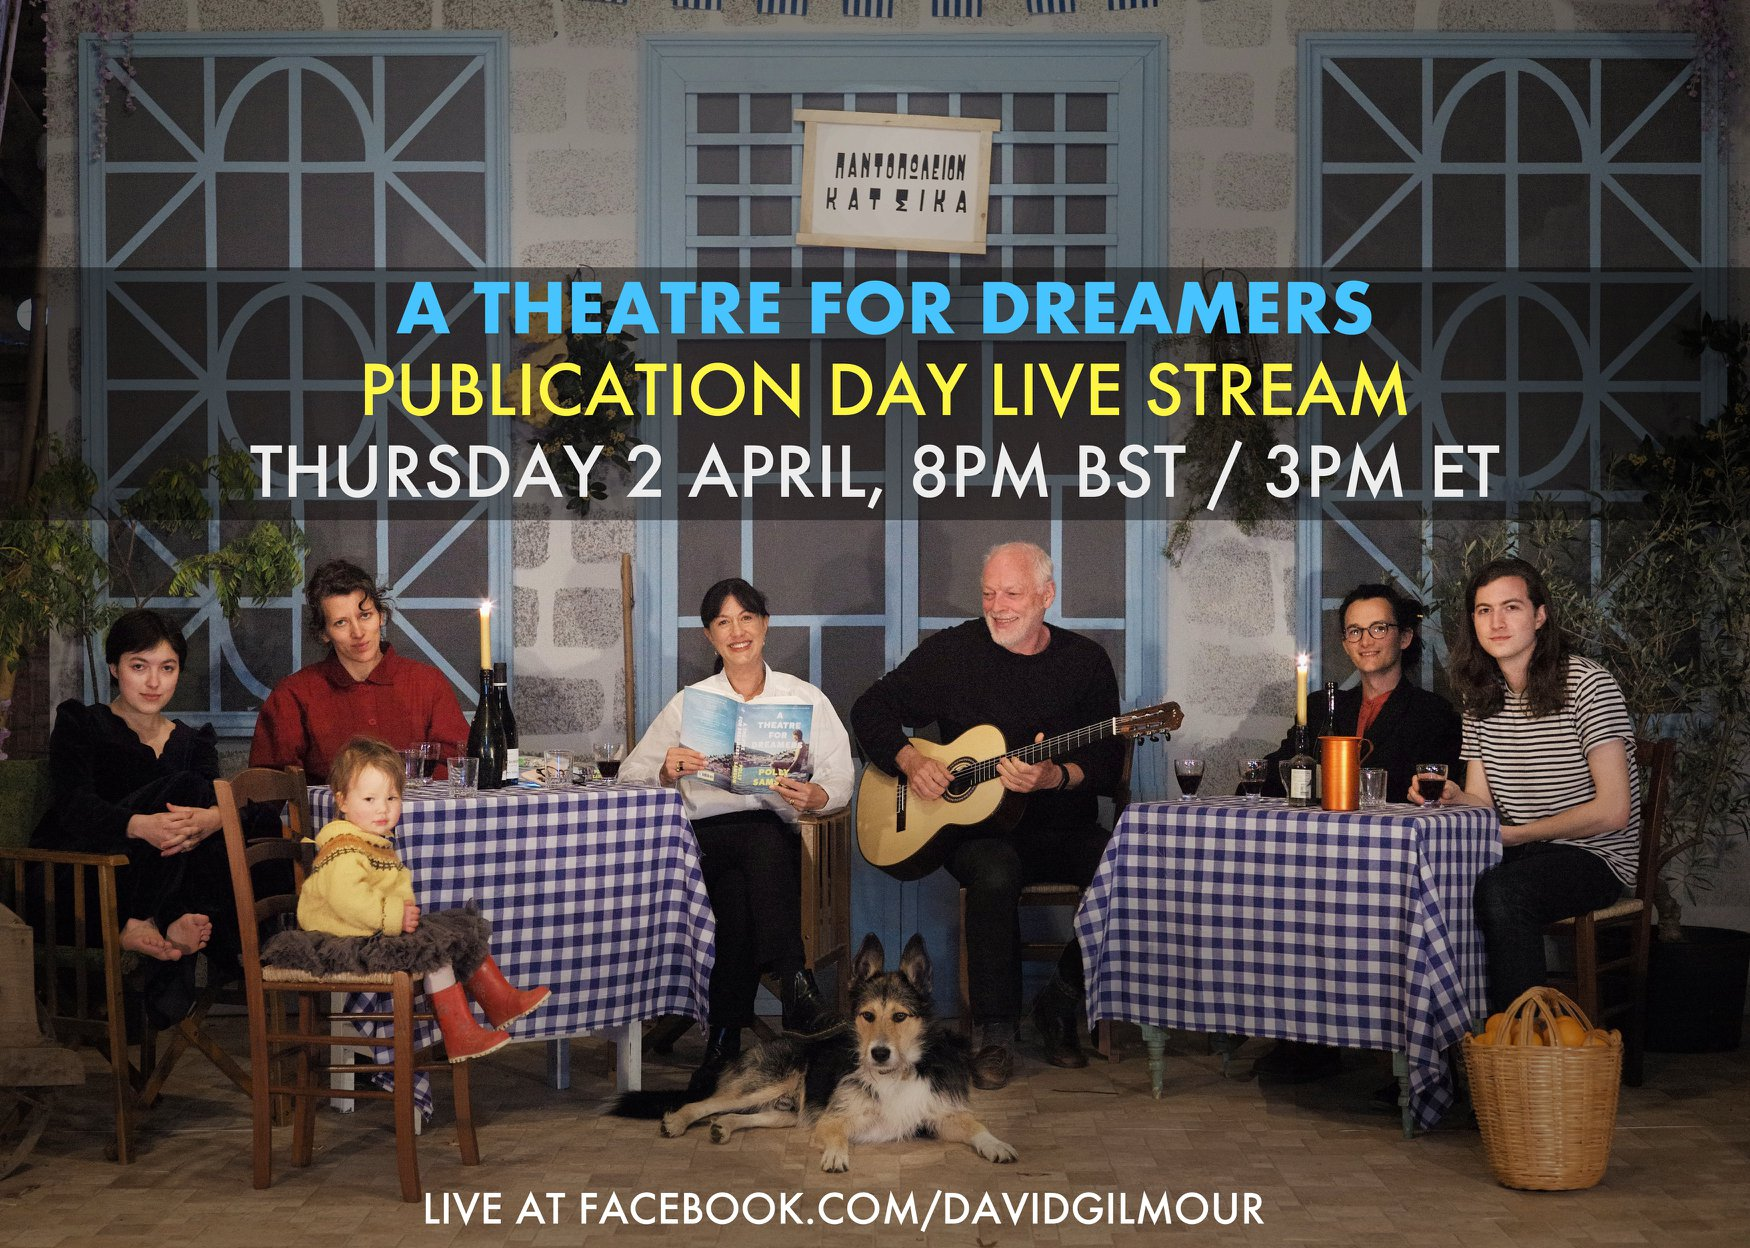 Polly Samson, David Gilmour, Crosby the Dog and Family - Facebook Live Stream - A Theatre for Dreamers